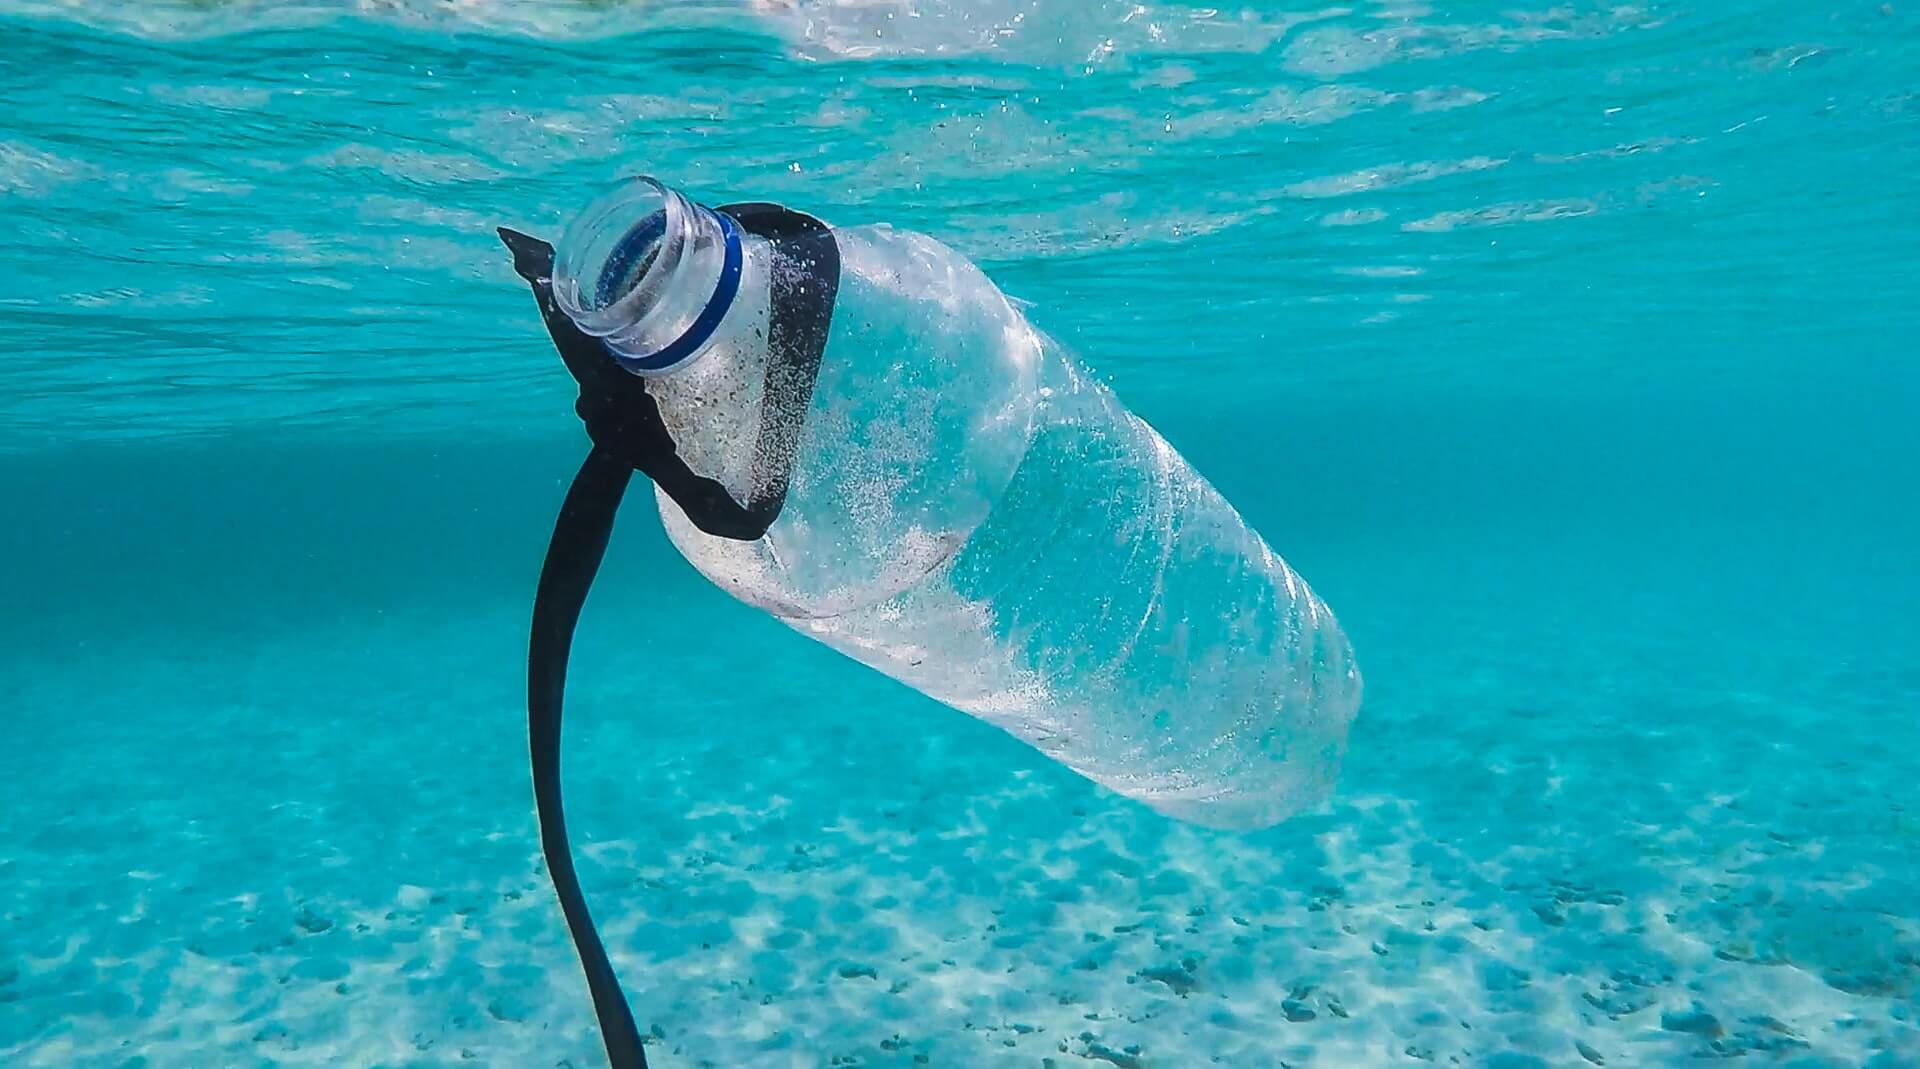 20 Companies Produce 55% of World's Plastic Waste, Report Reveals